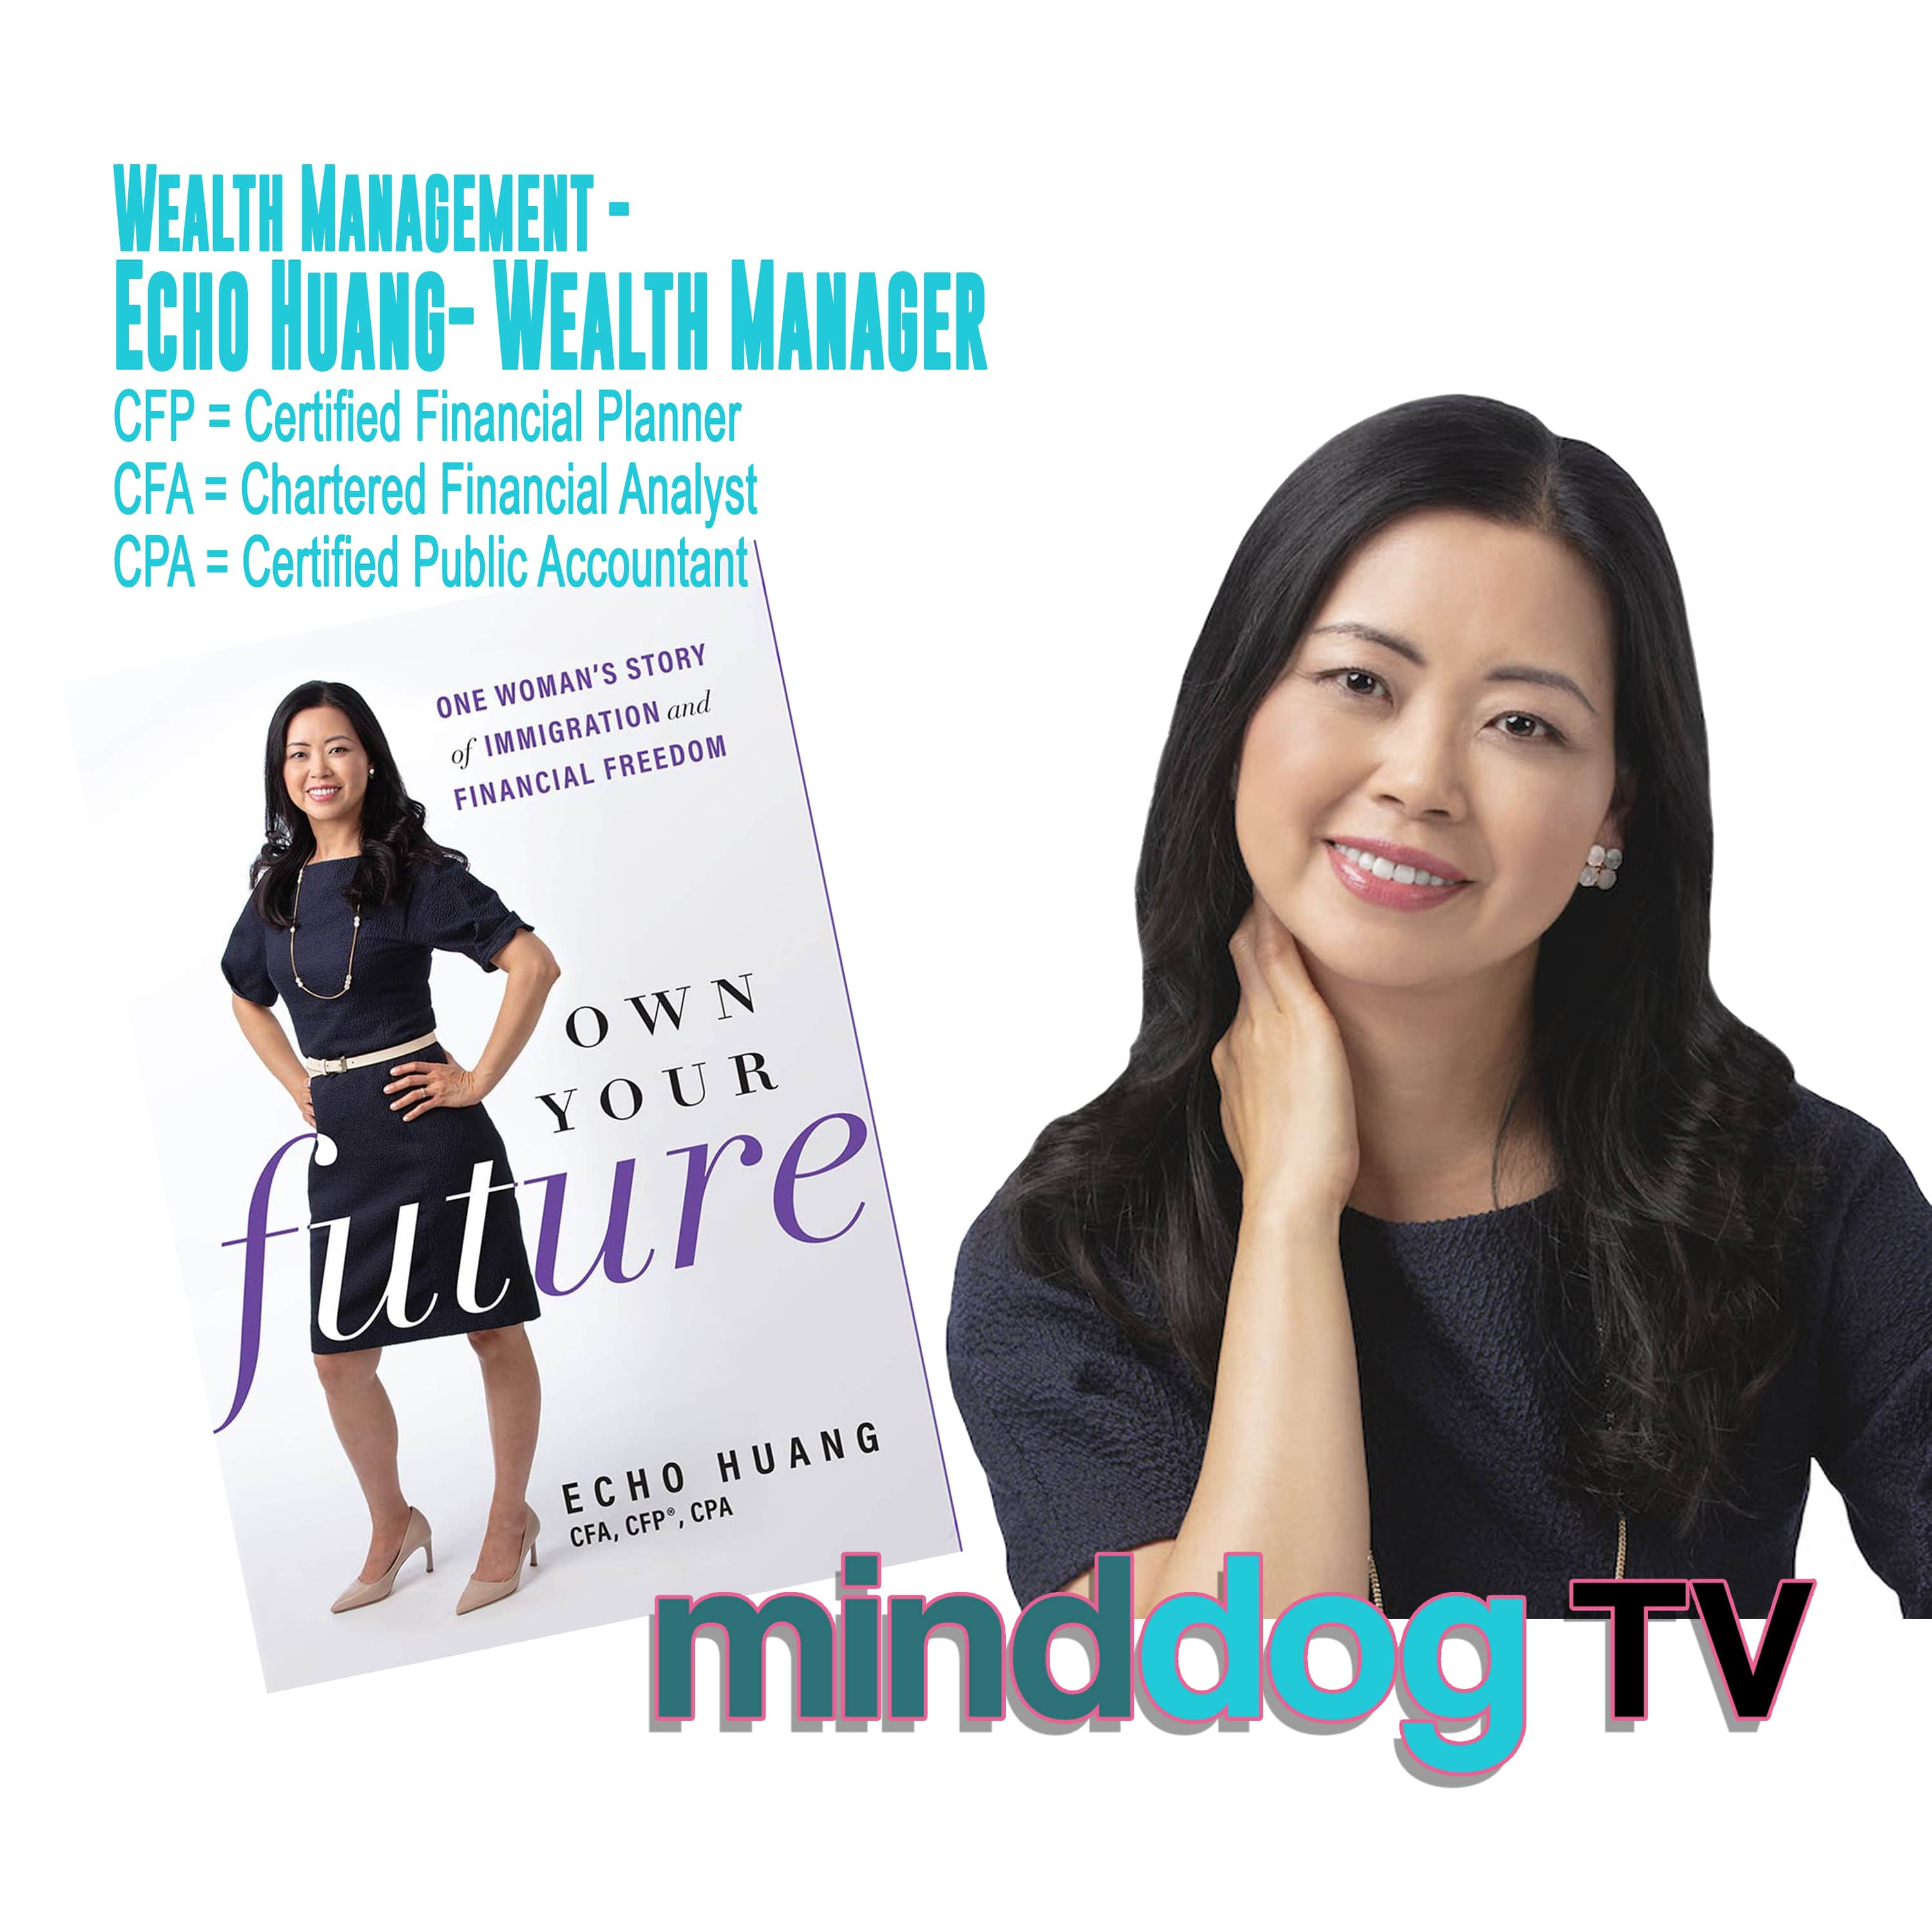 Echo Huang was Recently Featured on Minddog TV